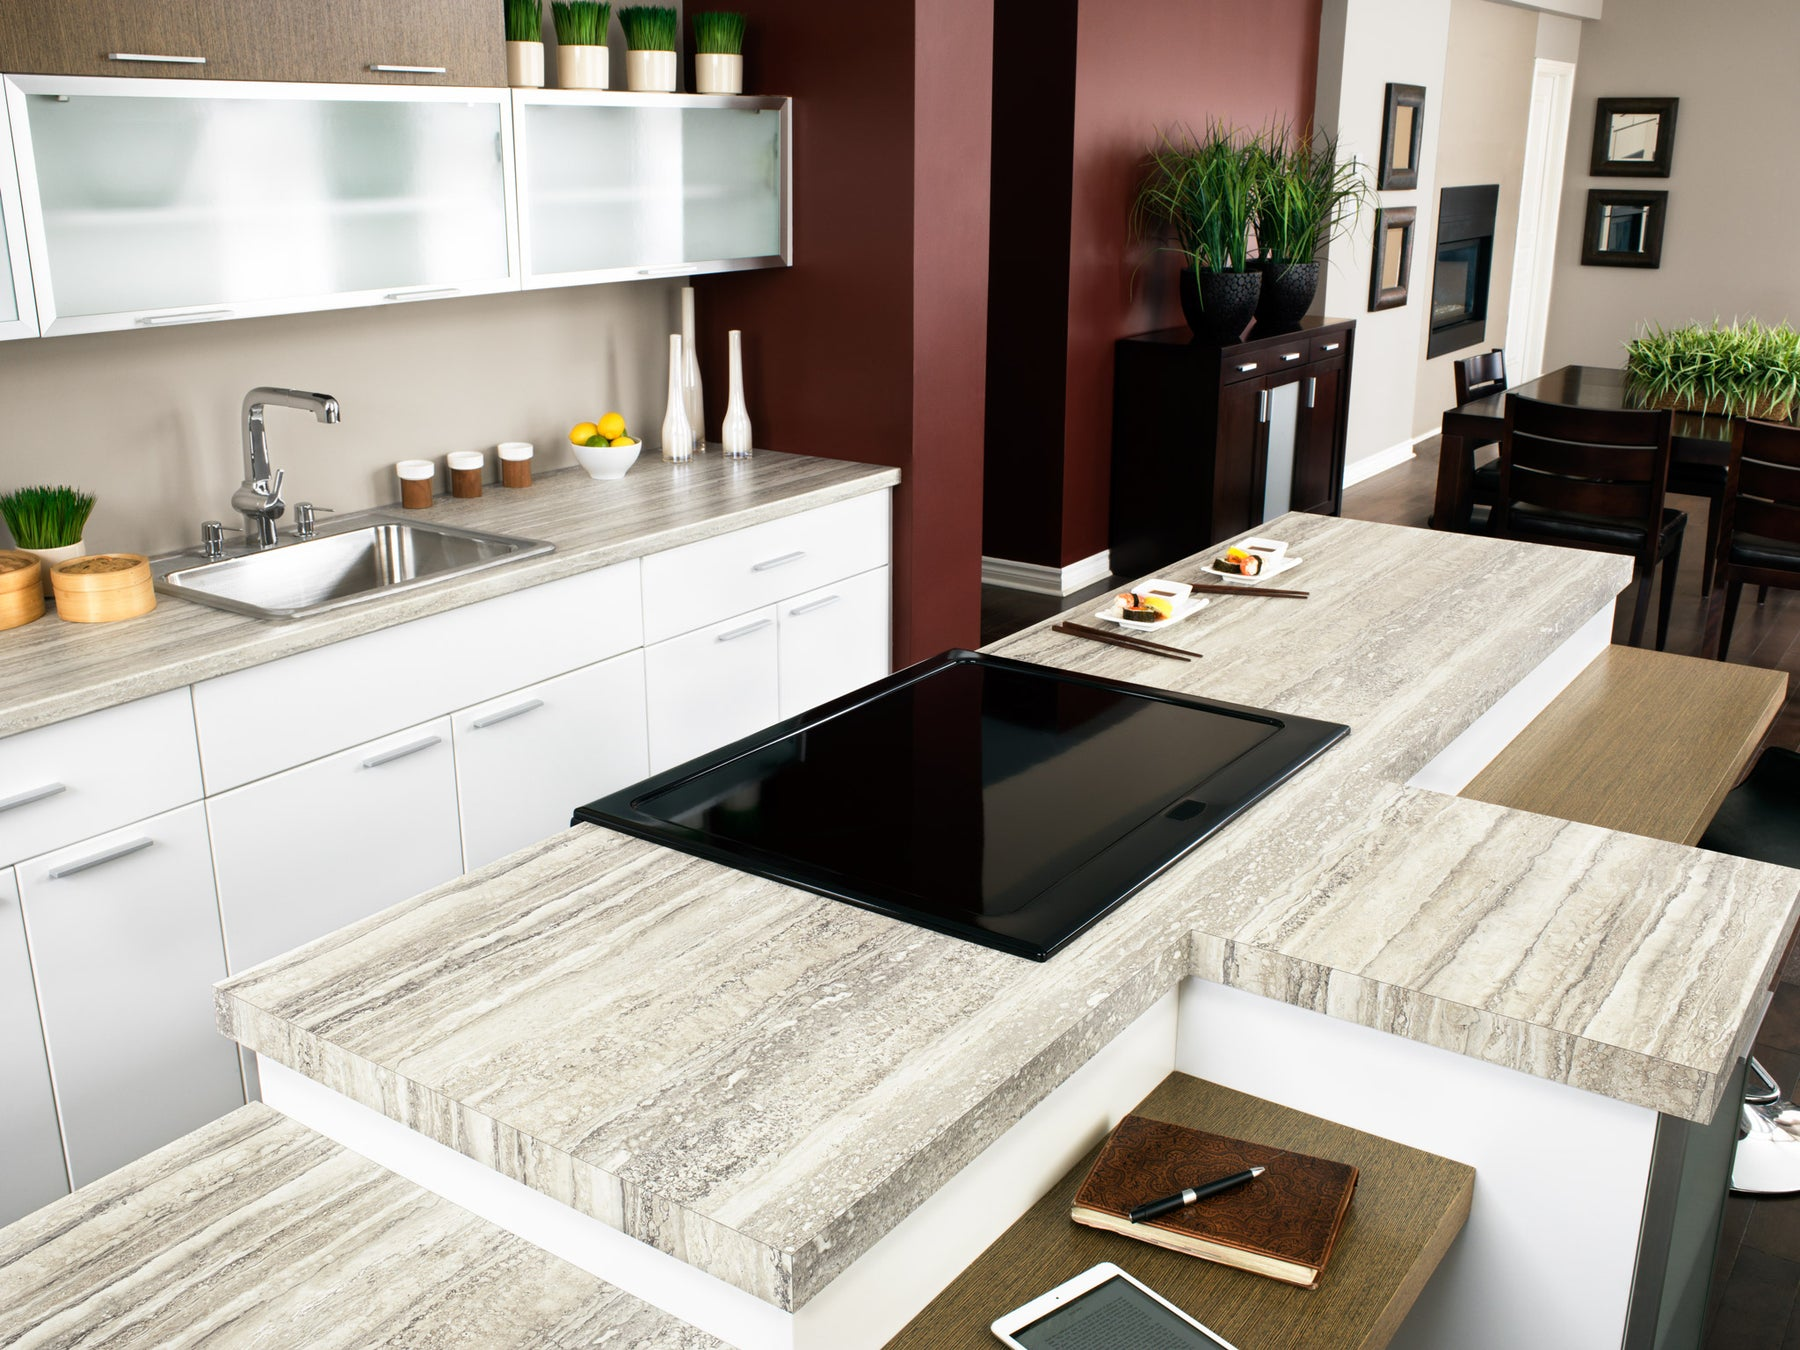 Travertine Countertops: Design Ideas, Pros & Cons and Cost